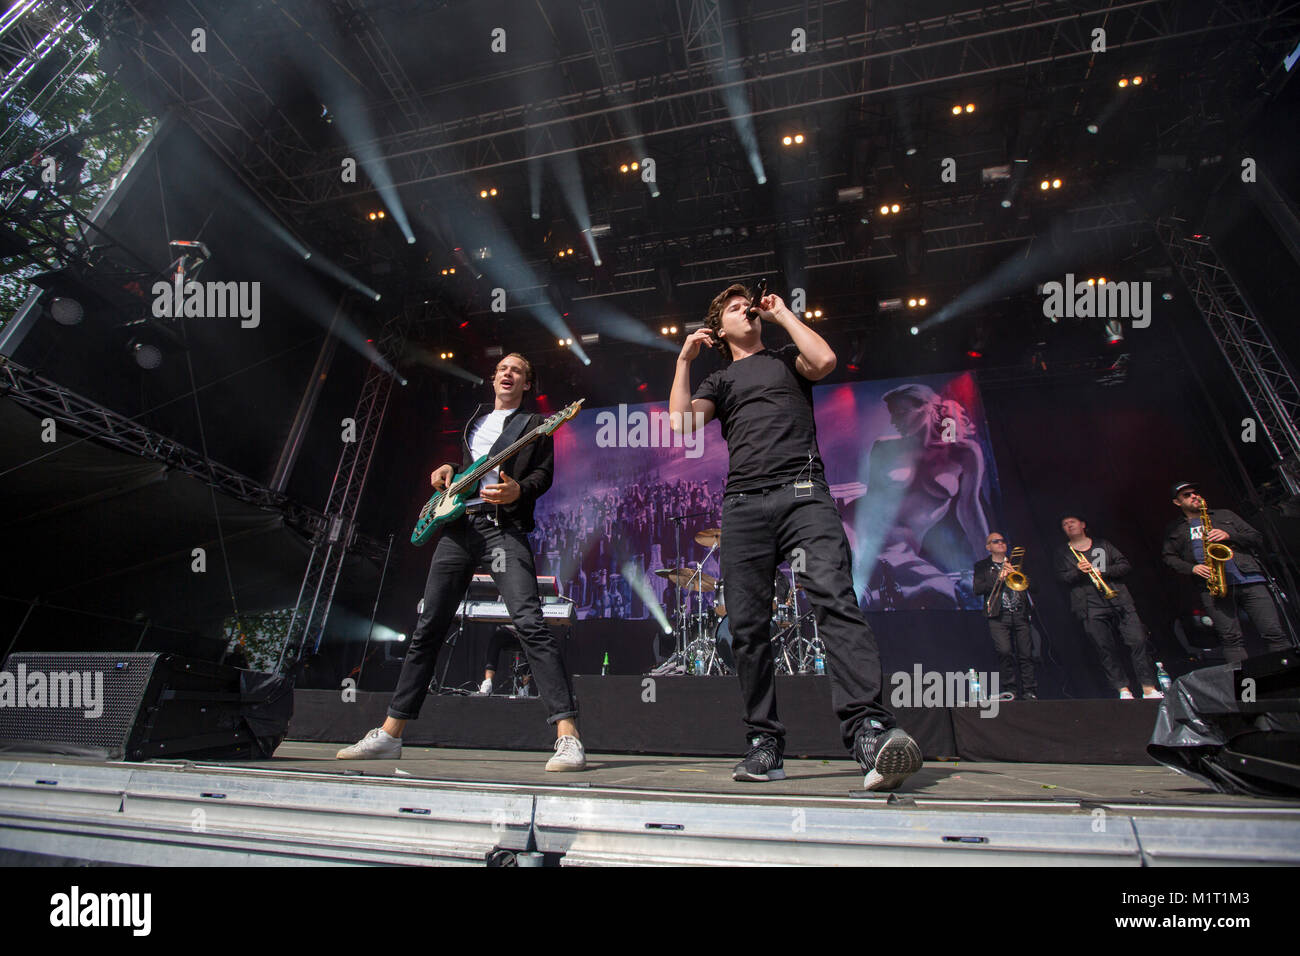 The Danish Band Lukas Graham Performs A Live Concert At The